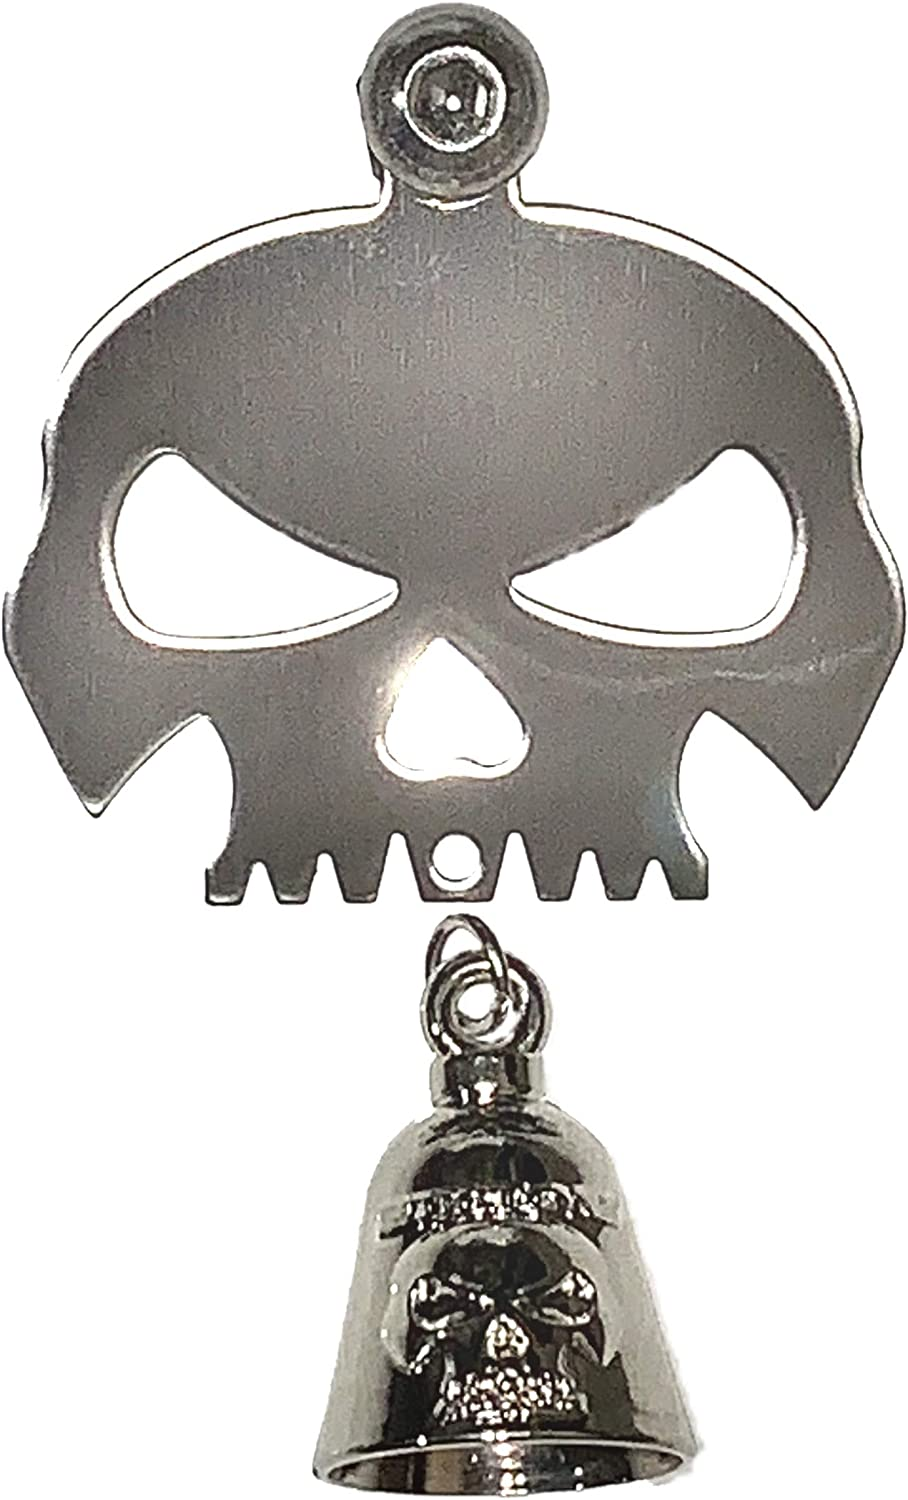 Bolt and Ring Included Fits all Harley Davidson Motorcycles /& More Proudly MADE IN THE USA! Chrome Bell Kustom Cycle Parts Universal Spider Web Skull Bell Hanger With Bell